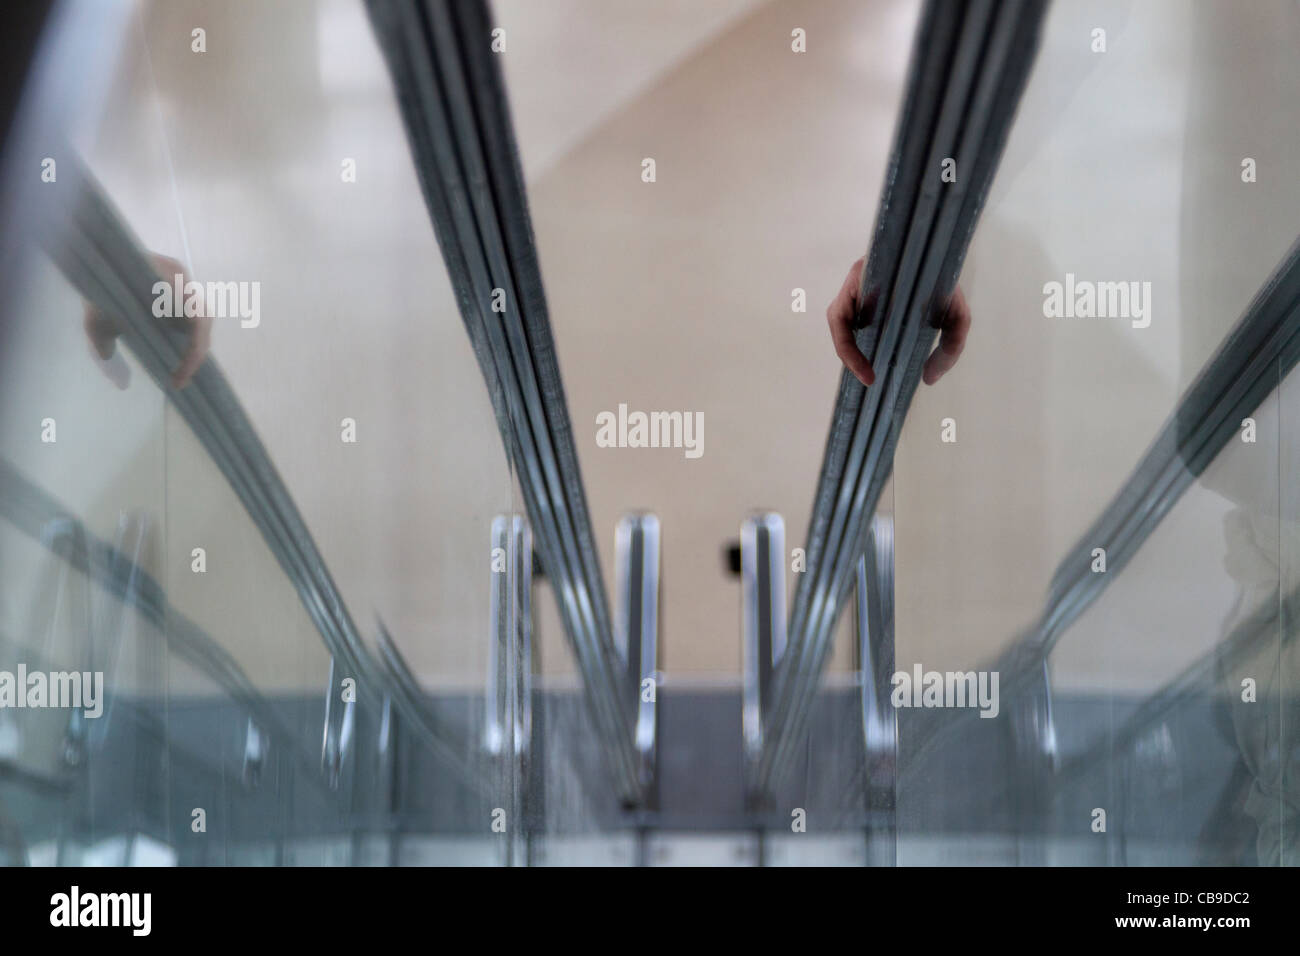 Abstract image of a person riding down an escalator, showing the hand grabbing the handrail and its reflection - Stock Image